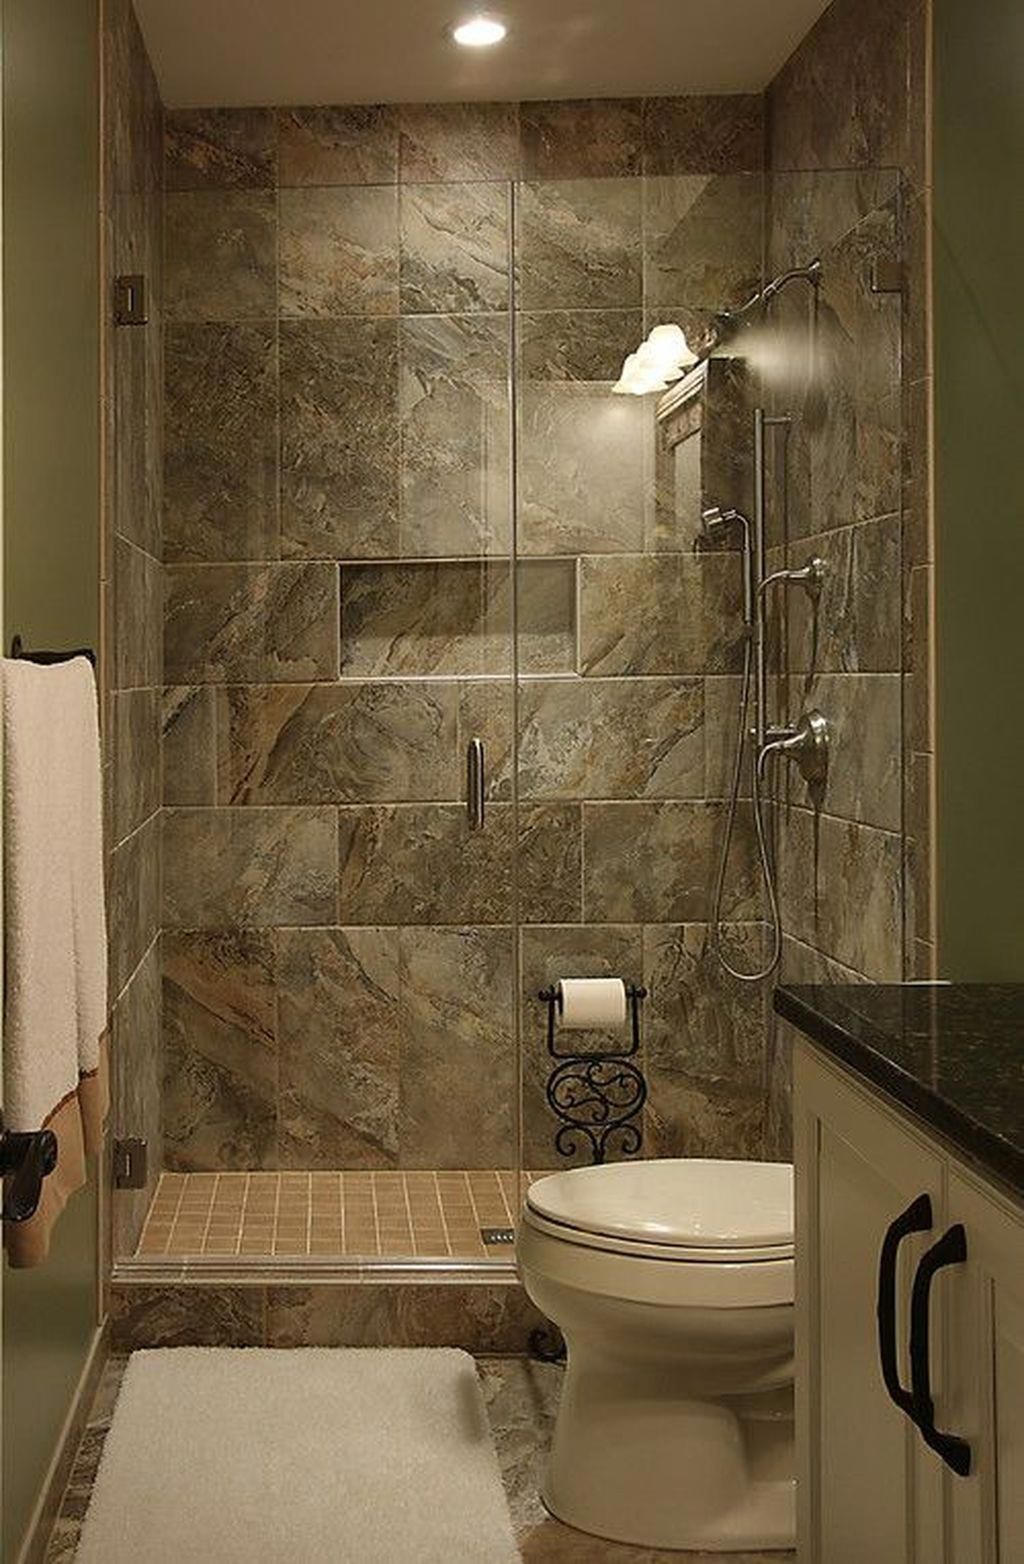 This could appeal to you. Bathroom Diy Ideas in 2020